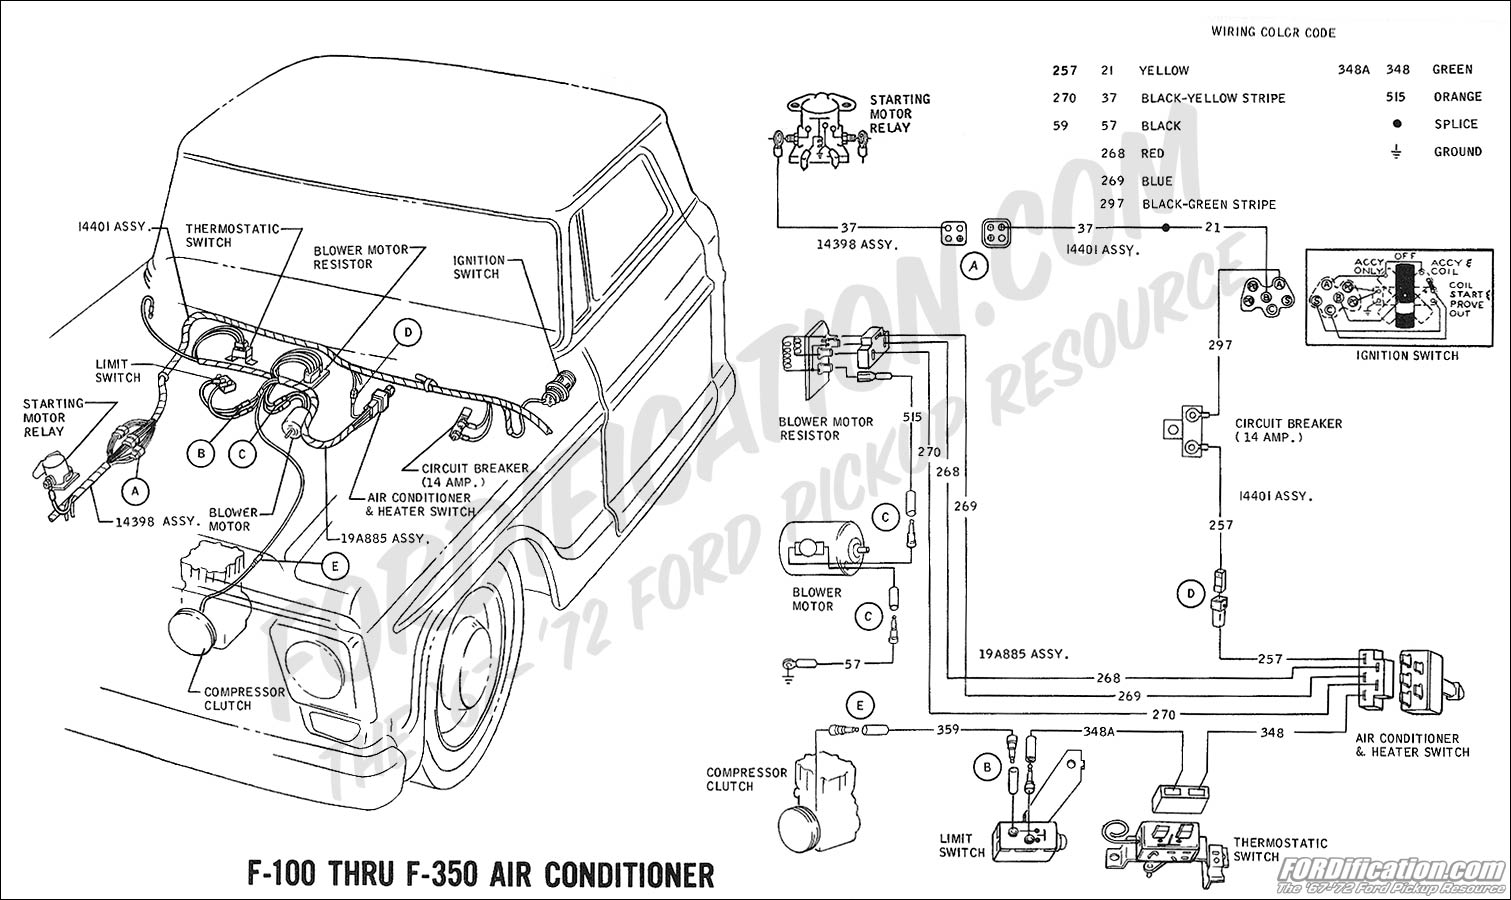 Wiring Diagram For 2007 Silverado in addition 2003 Dodge Dually also Mopar 440 Engine Wiring Harness moreover Page2 additionally 52pyq Mercury Grand Marquis Car Won T Start Blue Checked. on mega 2 fuel injection wiring